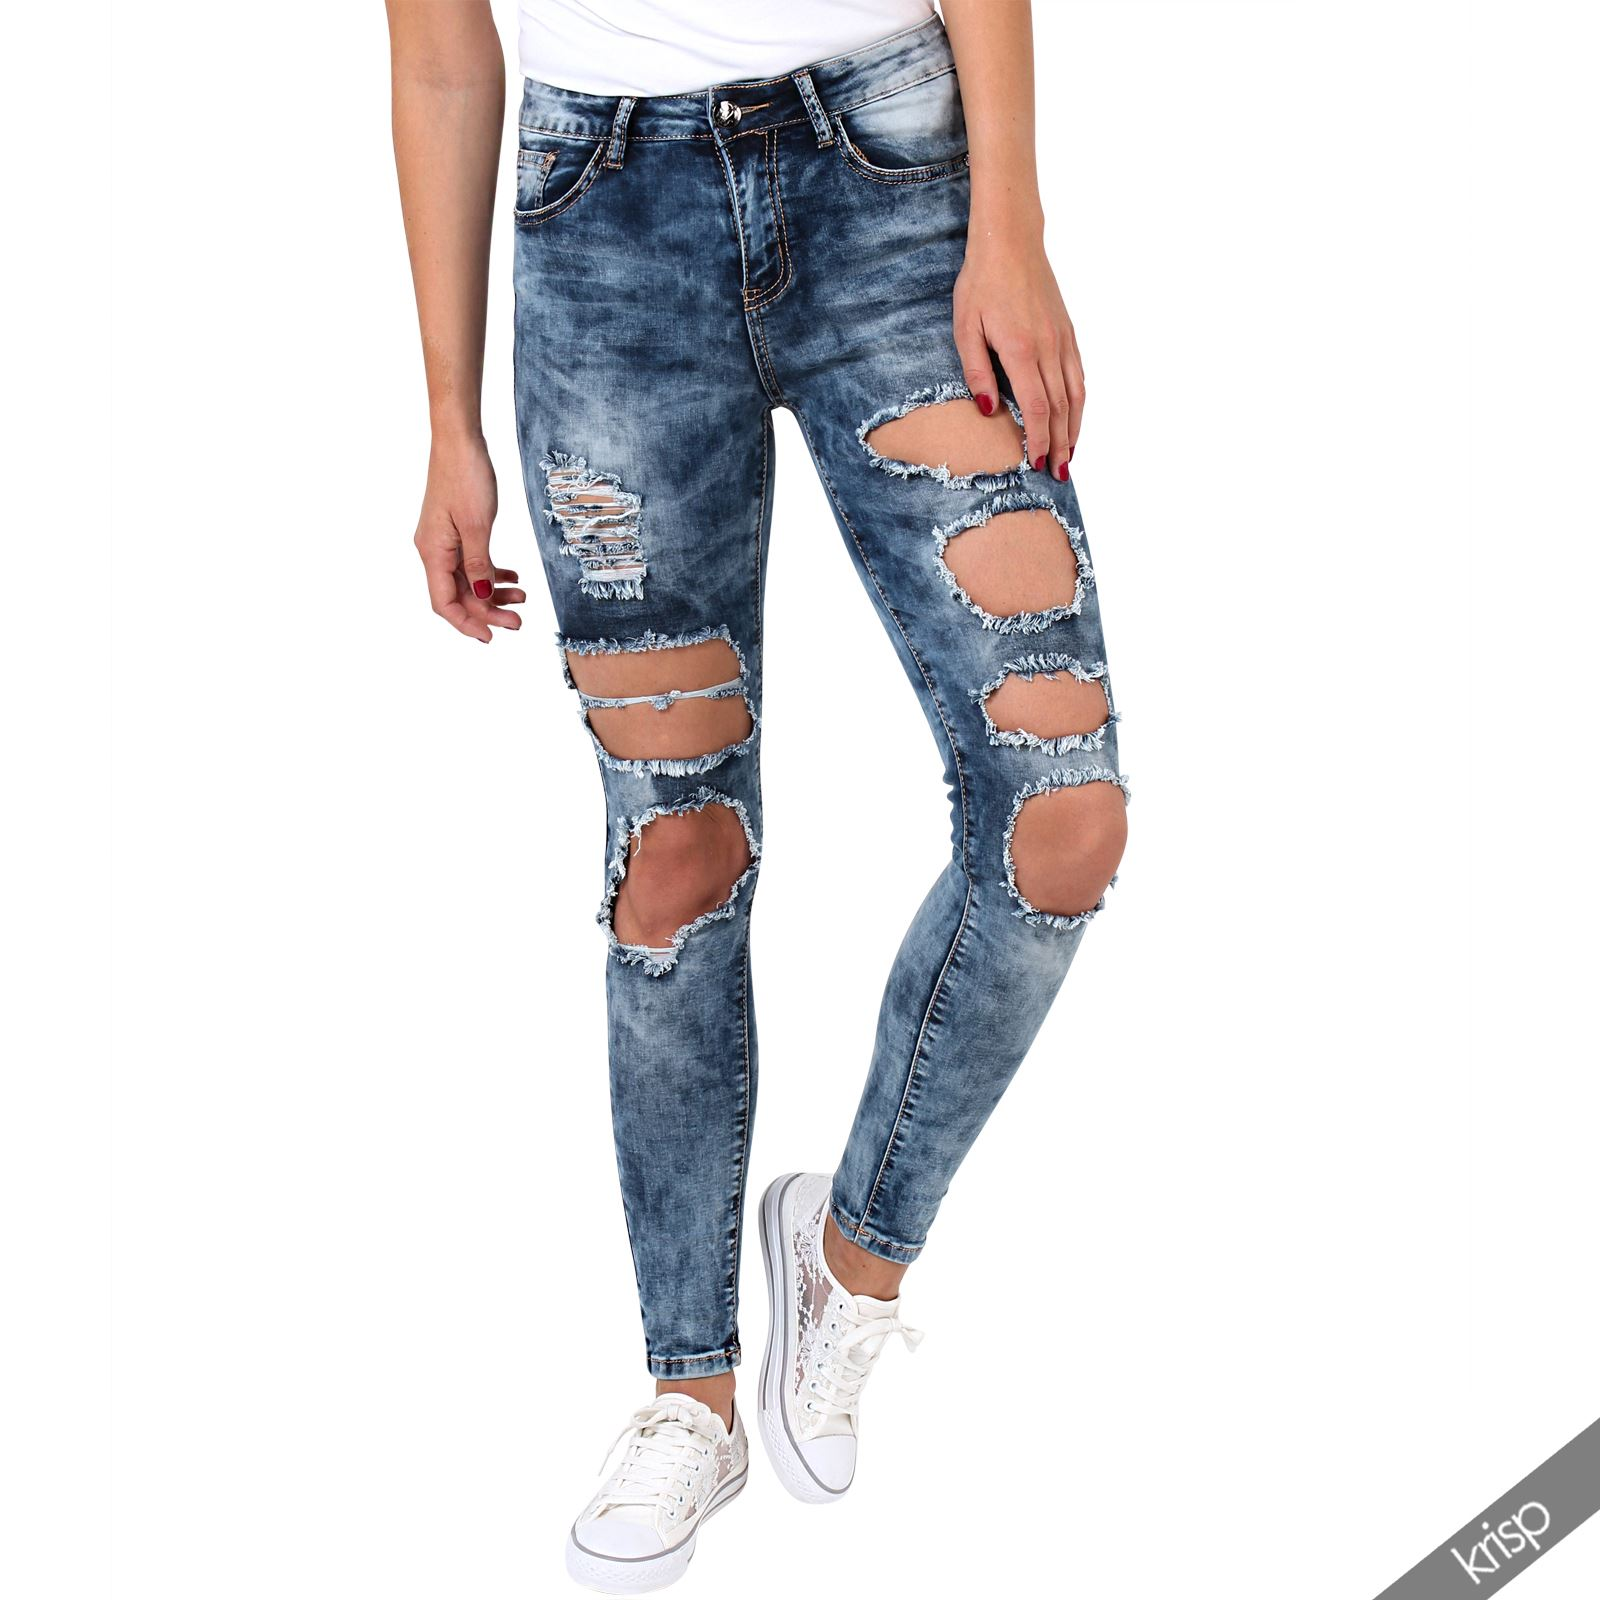 femmes pantalon jean slim trou d chir grunge taille haute d lav tie dye retro ebay. Black Bedroom Furniture Sets. Home Design Ideas